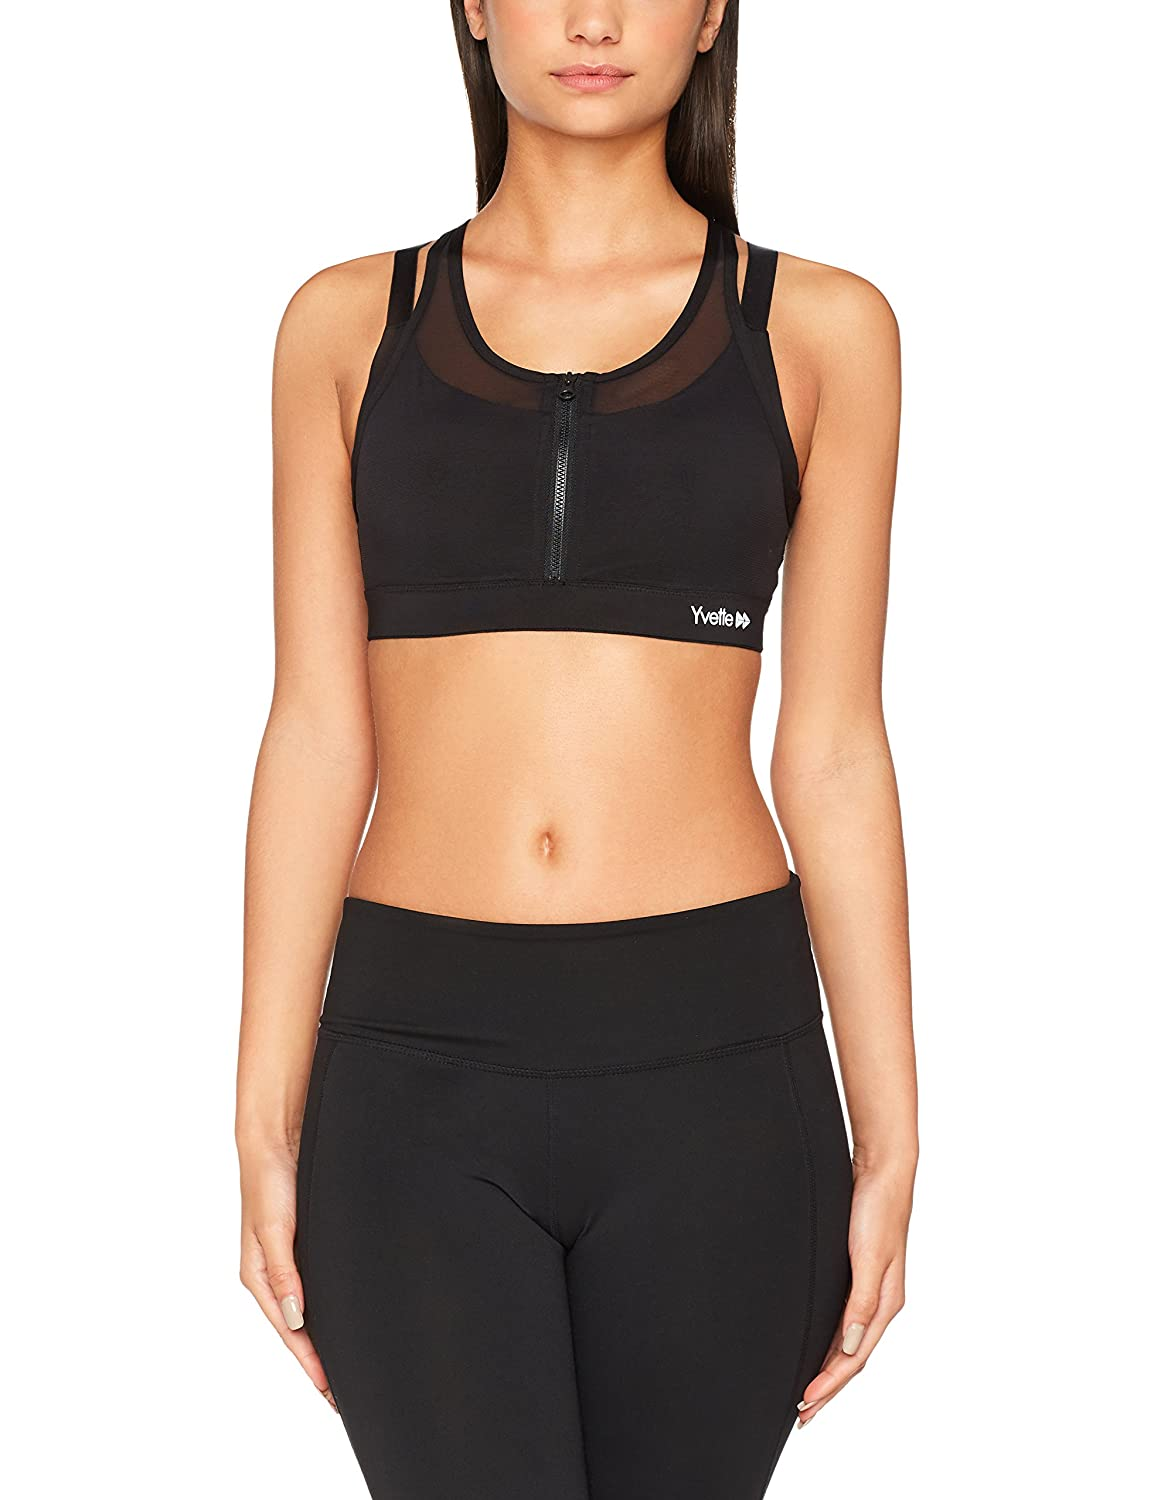 0f64d41153015 Yvette Women s Zip Front Sports Bra- High Impact Wireless No Bounce  Compression Push up Plus